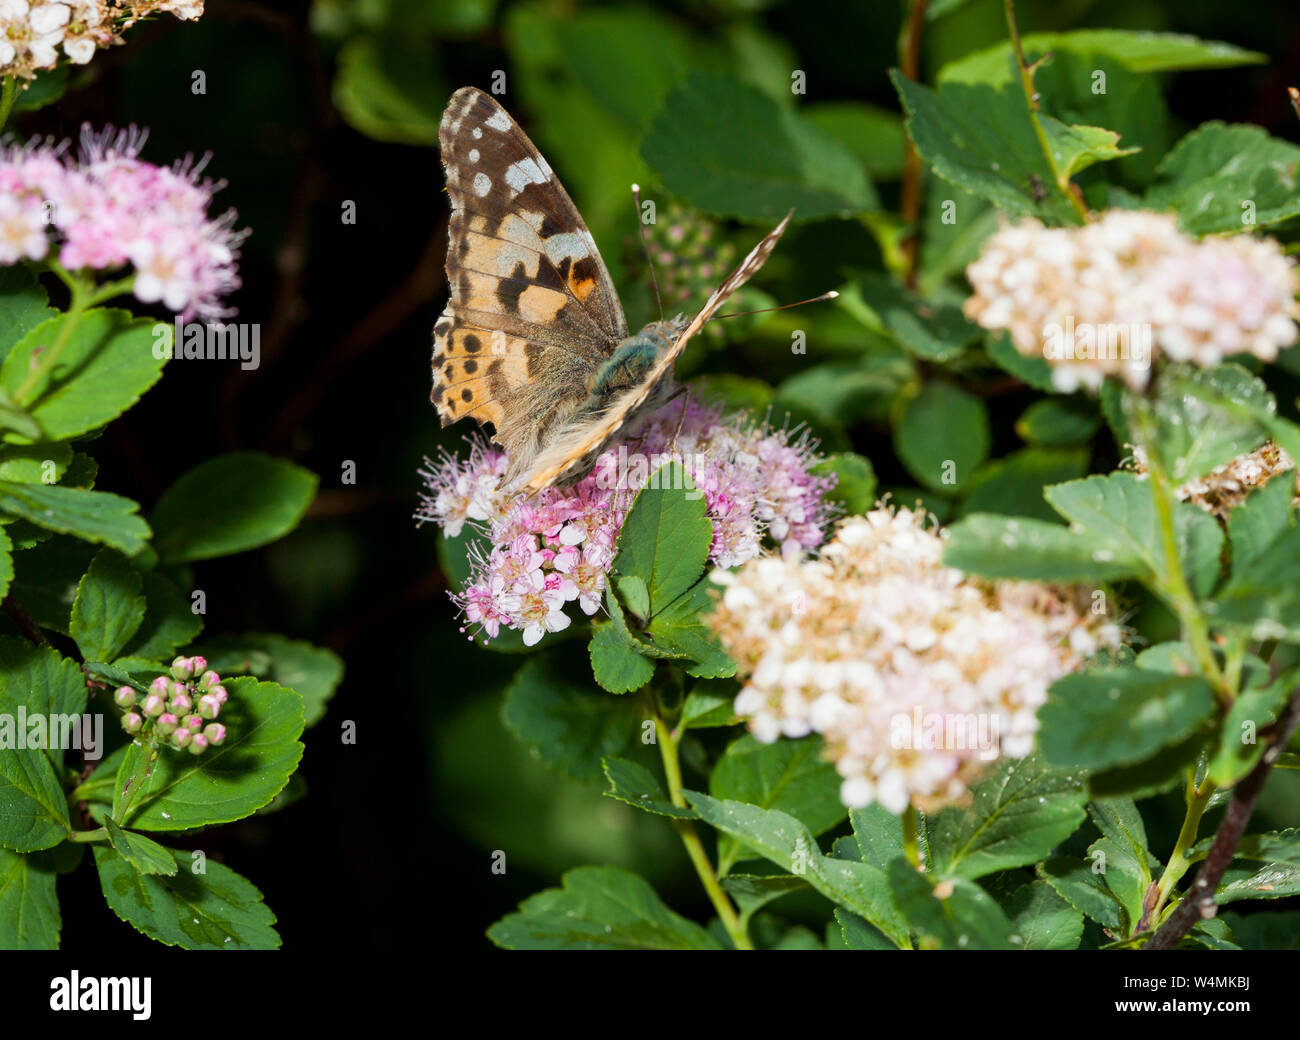 VANESSA CARDUI Cynthia cardui  on flower one of most widespread,elderly with bleached colors and chopped wing edge Stock Photo